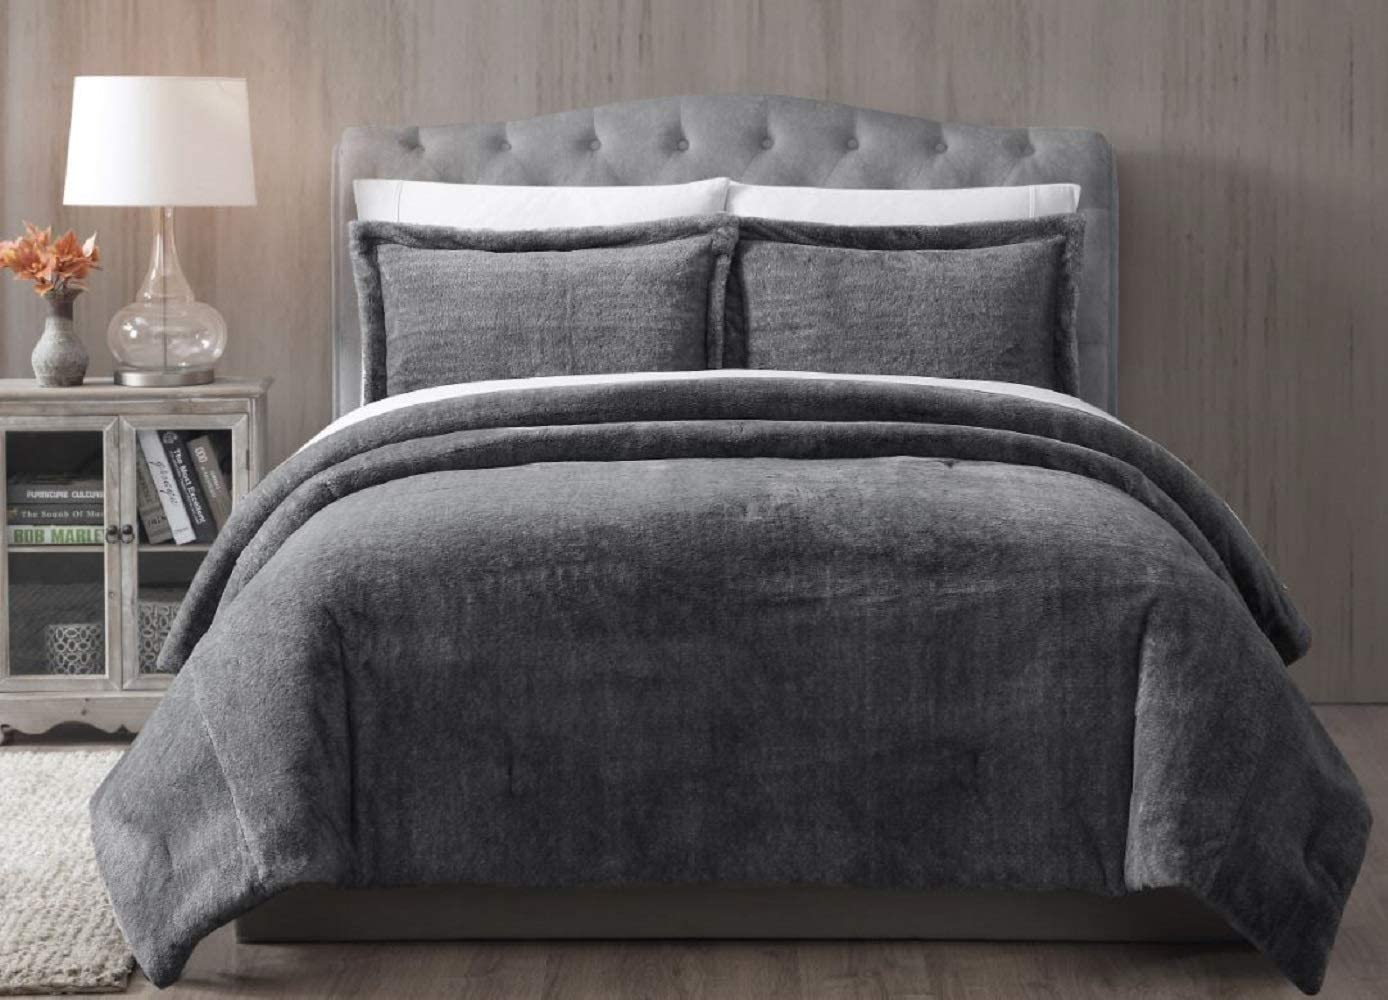 Luxury 3pc Black Faux Fur Comforter AND Decorative Pillow Shams ALL SIZES